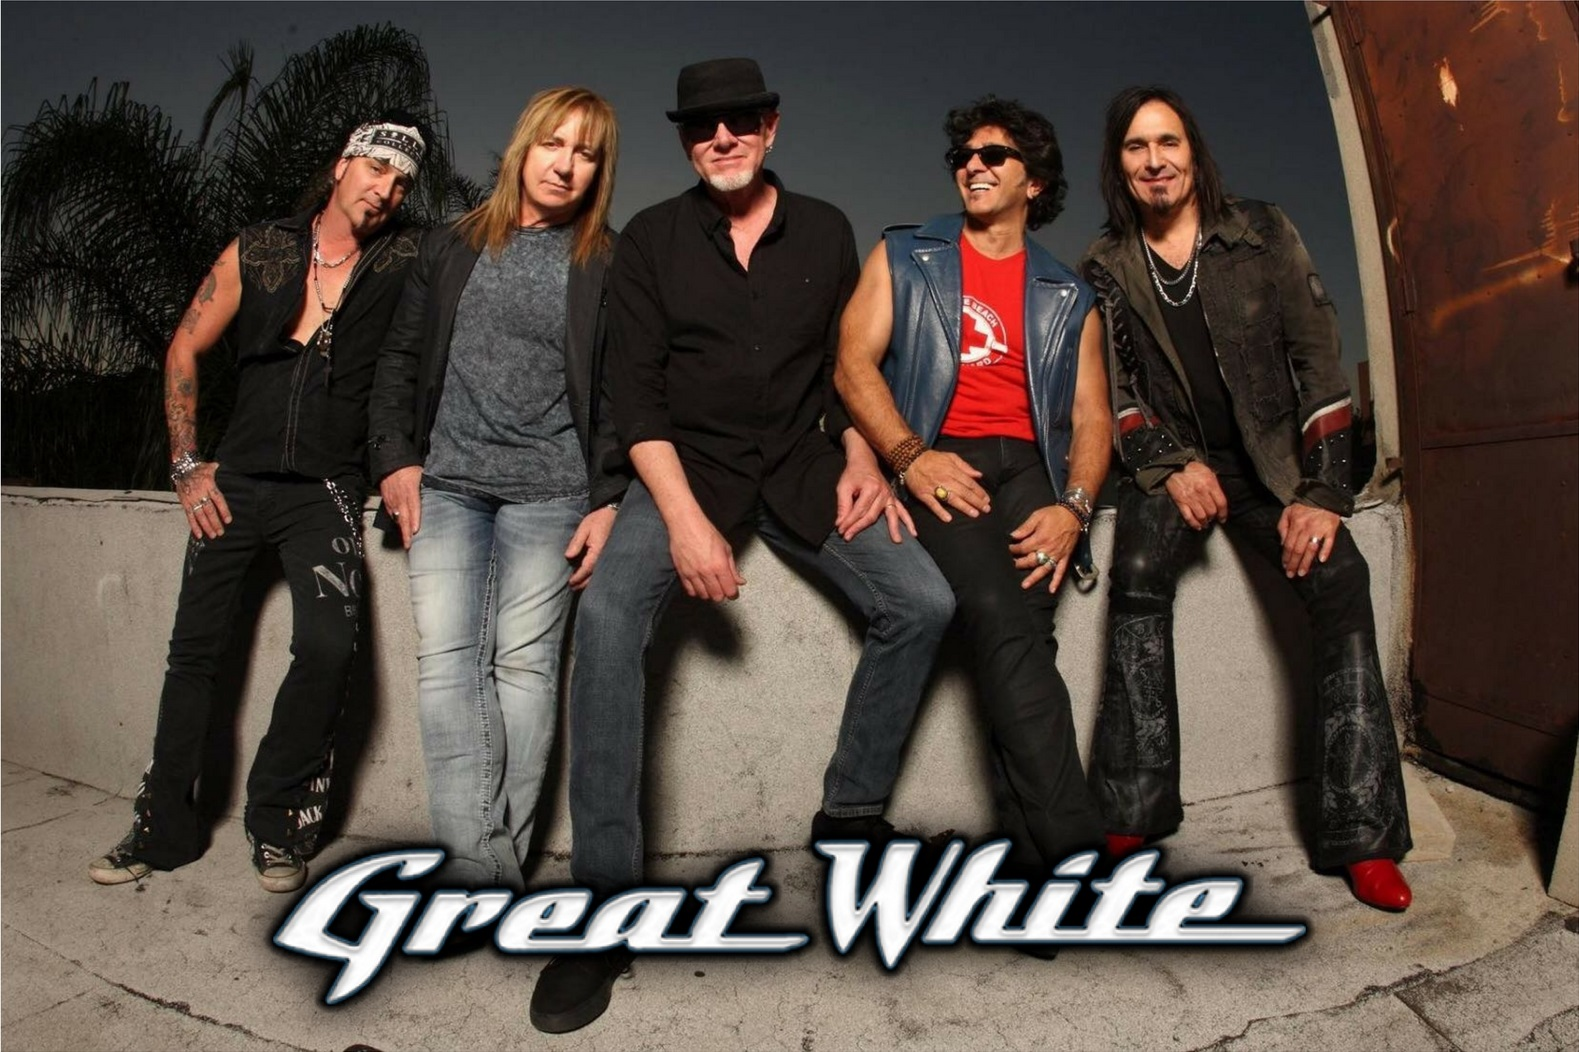 Great White [Band]